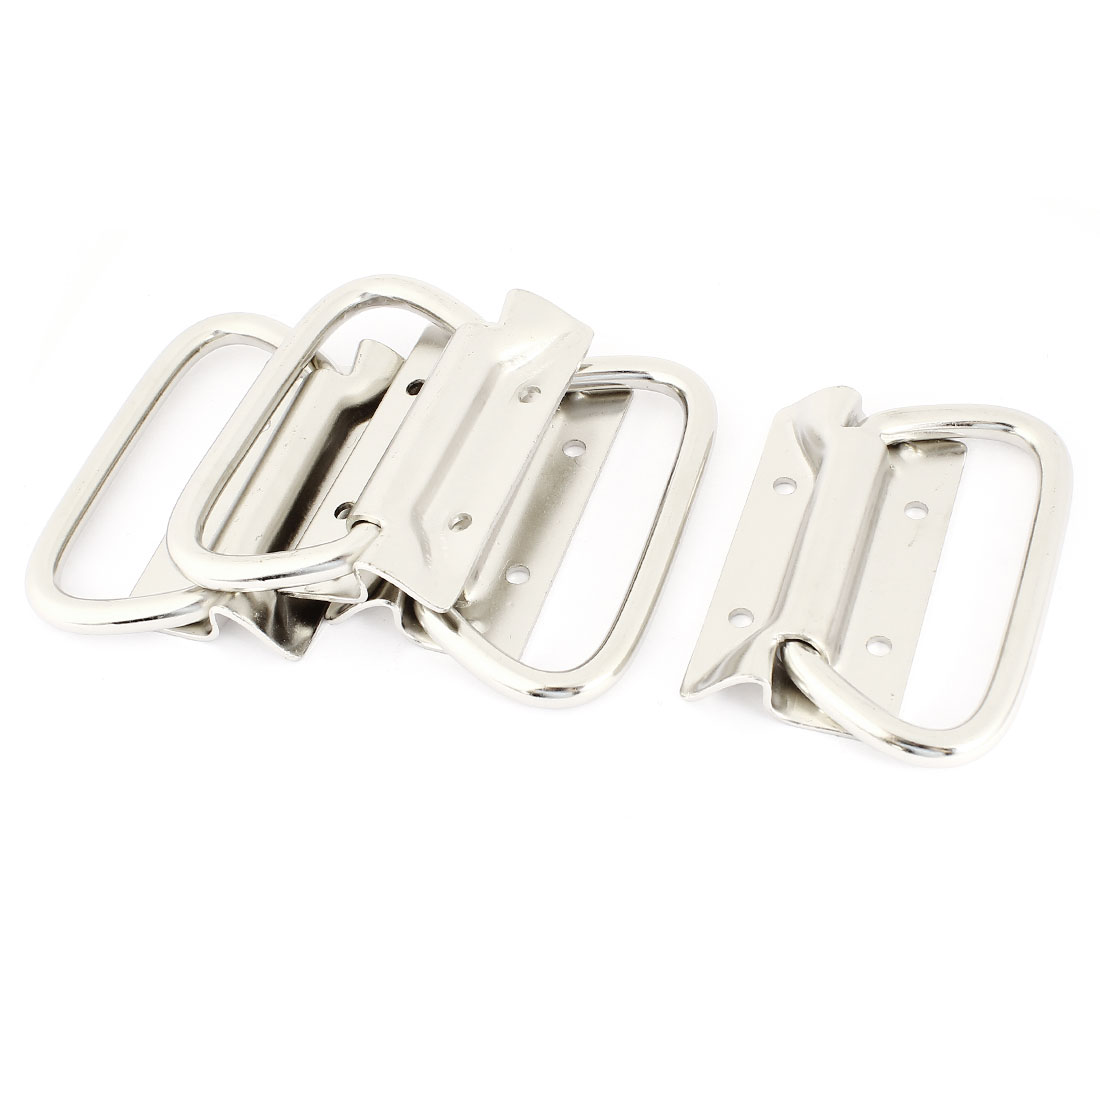 Hardware Parts Cabinet Door Pull Handle 8.6cm Long Silver Tone 4 Pcs